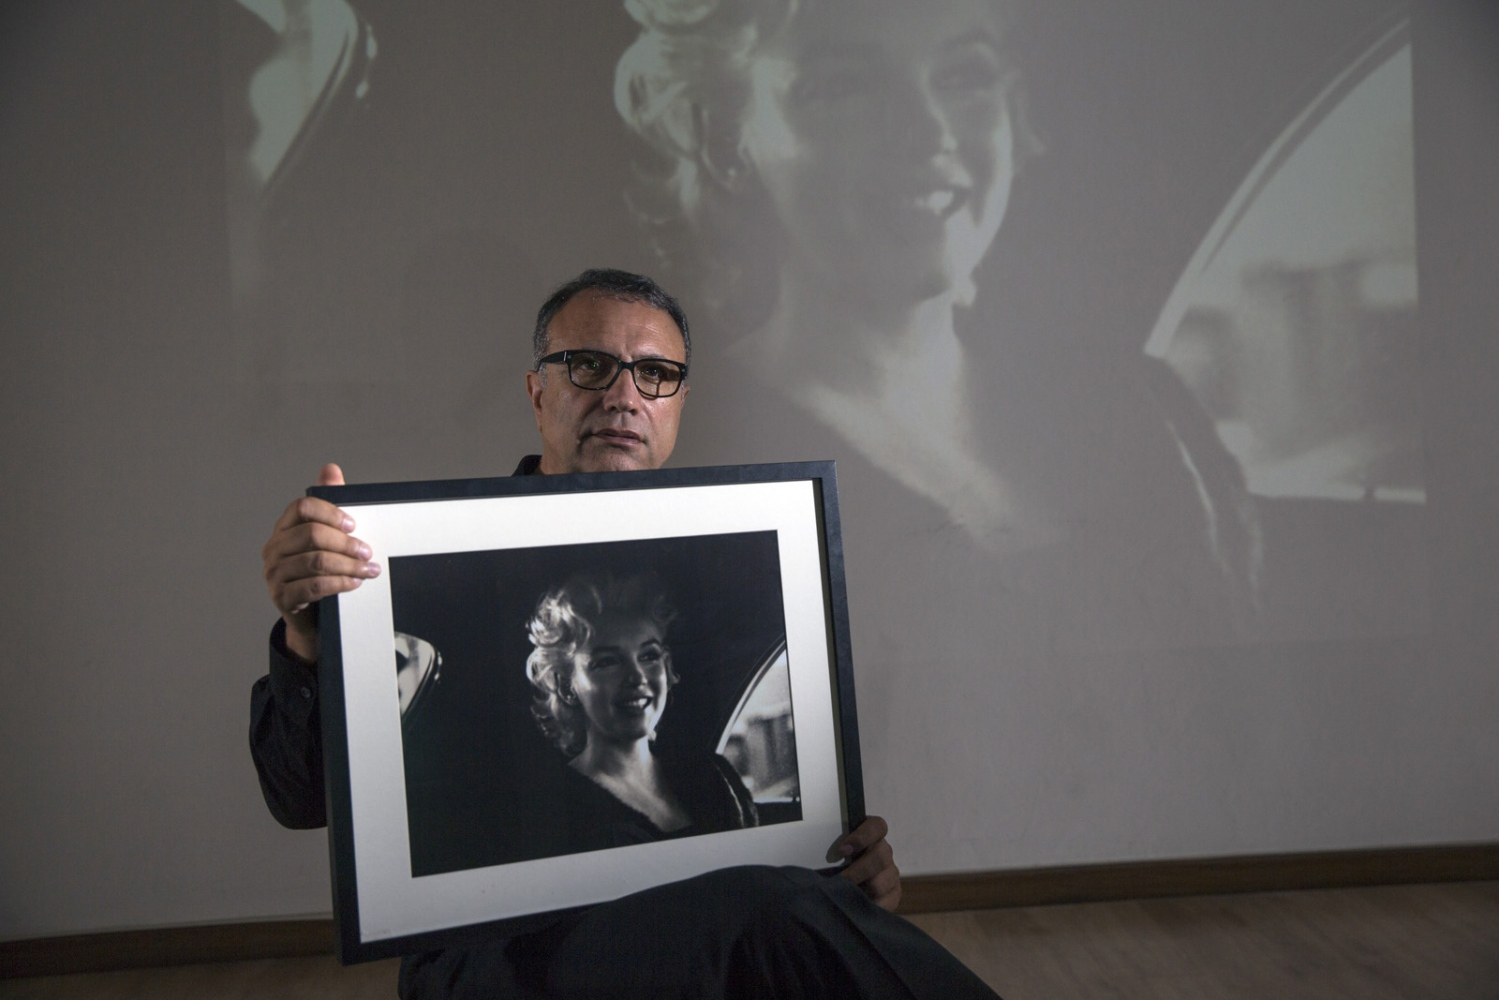 Hossein Farmani sits in his Bangkok photography gallery holding a beloved photograph of Marilyn Monroe which he owns the worlds largest collection.  He is also a gallery owner, exhibition curator, philanthropist and founder and president of the Lucie Awards in New York, International Design Awards, Px3, Paris Photo Prize and LICC, London Creative Awards, Focus on AIDS and the Farmani Gallery.  Born in Tehran, Iran, he emigrated to Los Angeles in 1975 where he studied at the at Hollywood Academy in Hollywood, California before starting his own photography studio which diverged in to many other projects.  Bangkok, Thailand